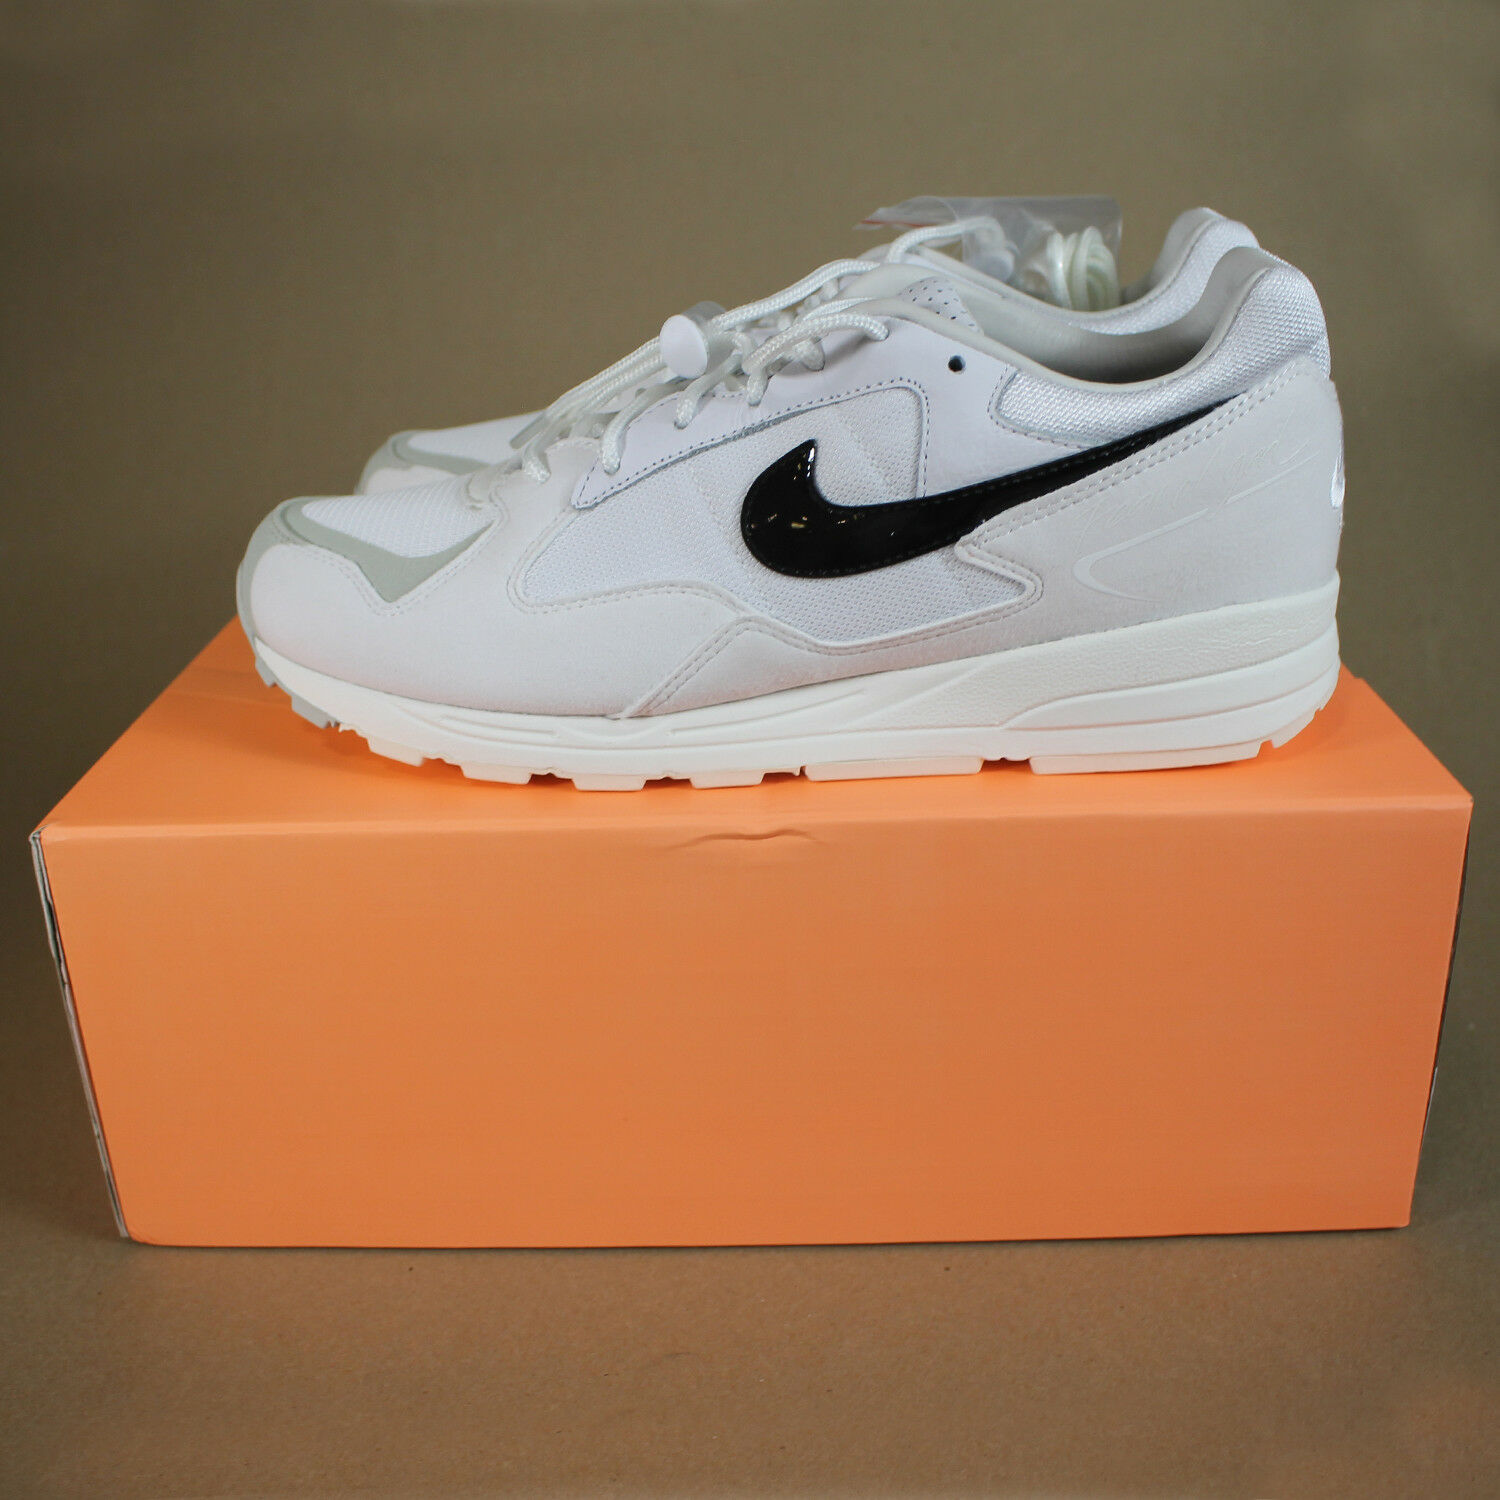 Nike Air Skylon 2 Fear of God White Size 8.5 US in Hand